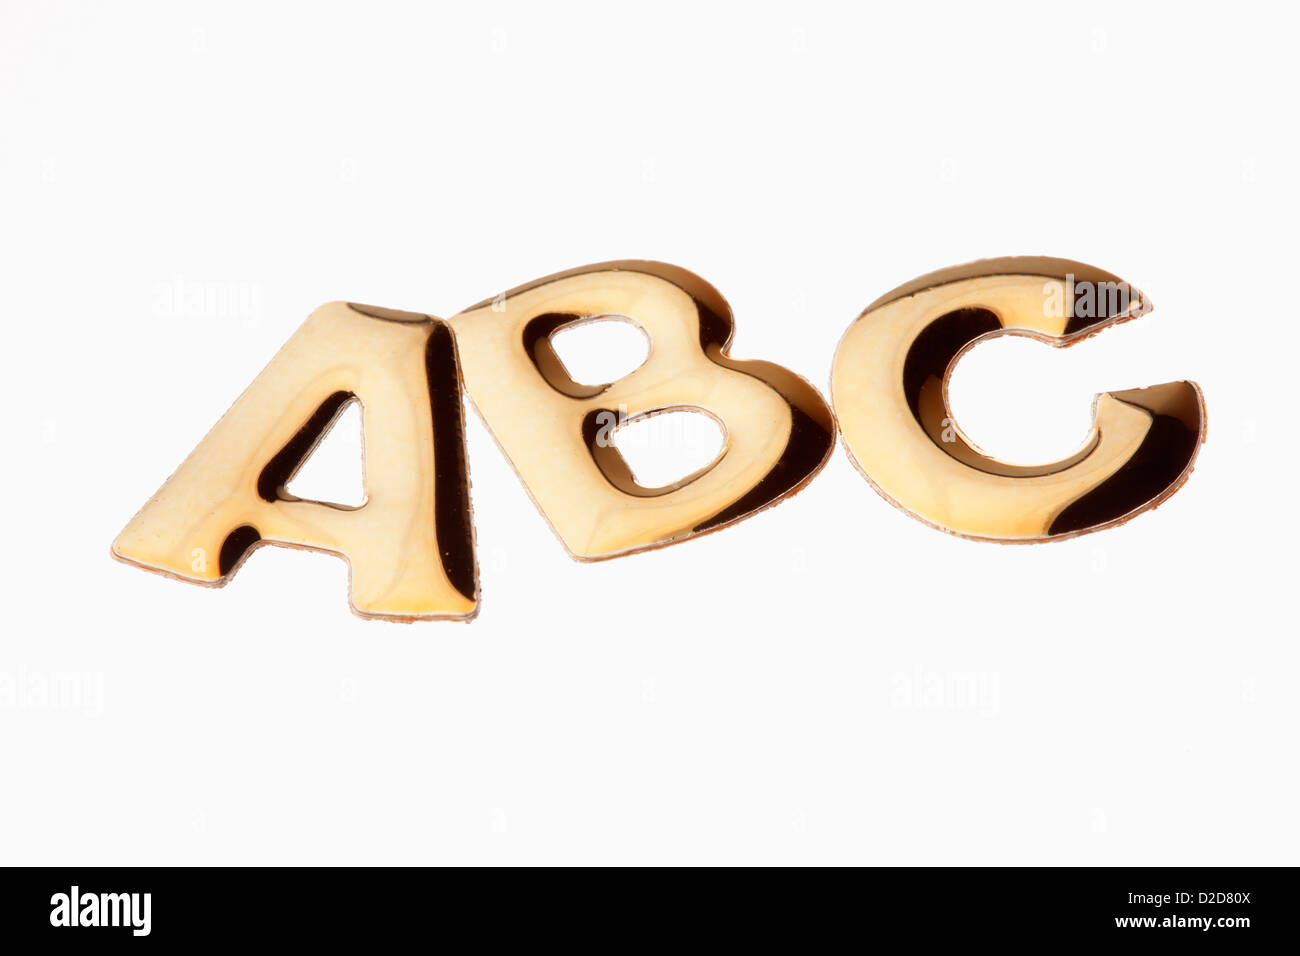 The letters 'ABC' in gold lettering - Stock Image